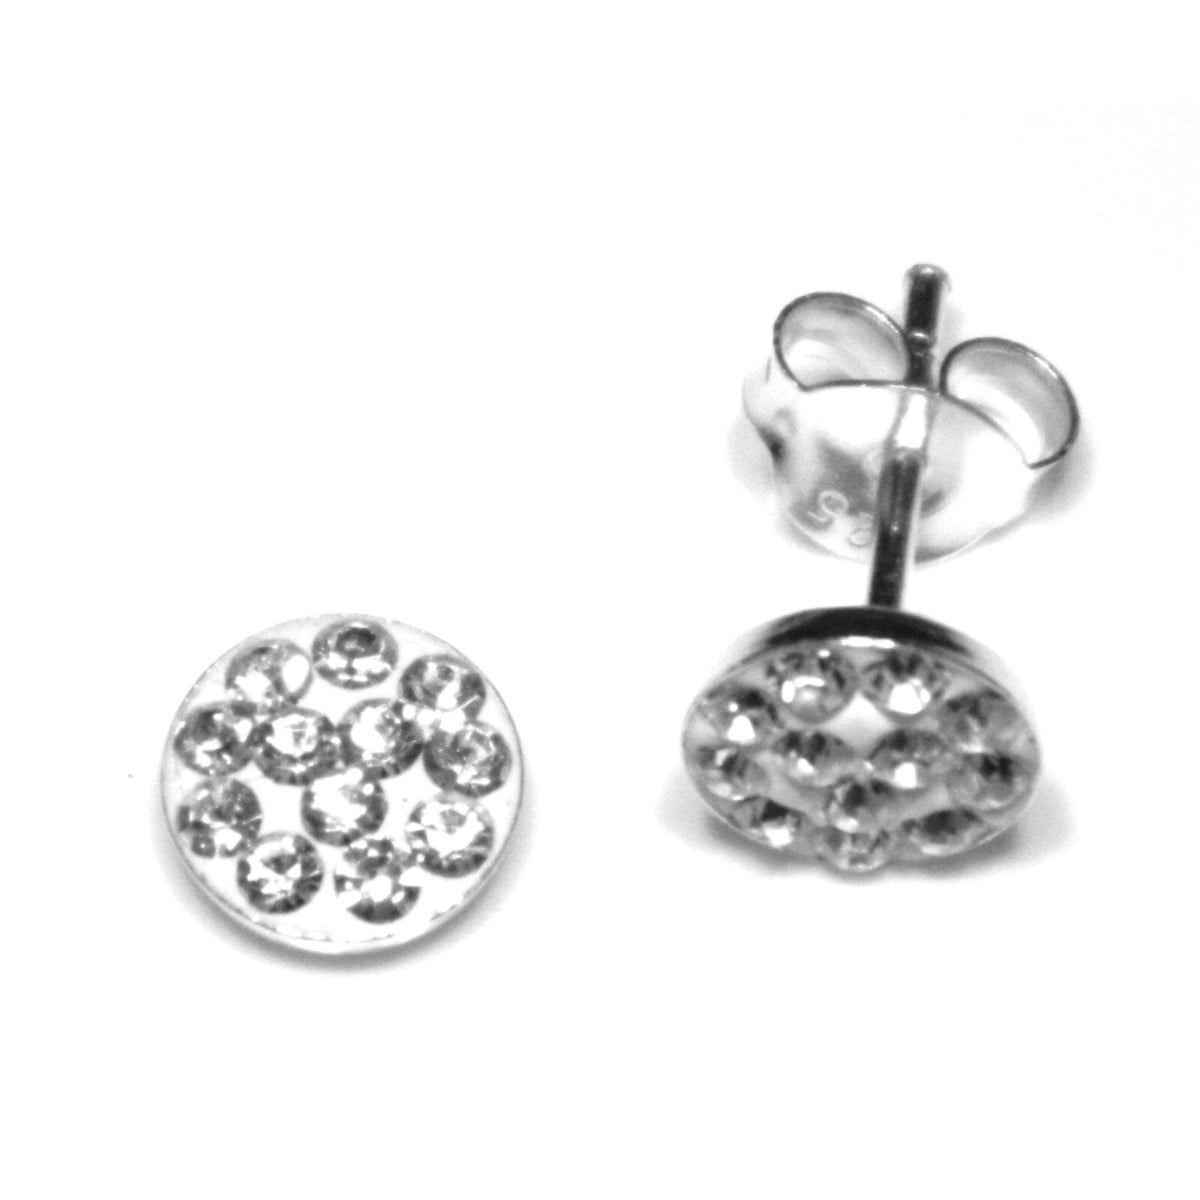 6 mm clear coloured crystal round stud earrings in sterling silver